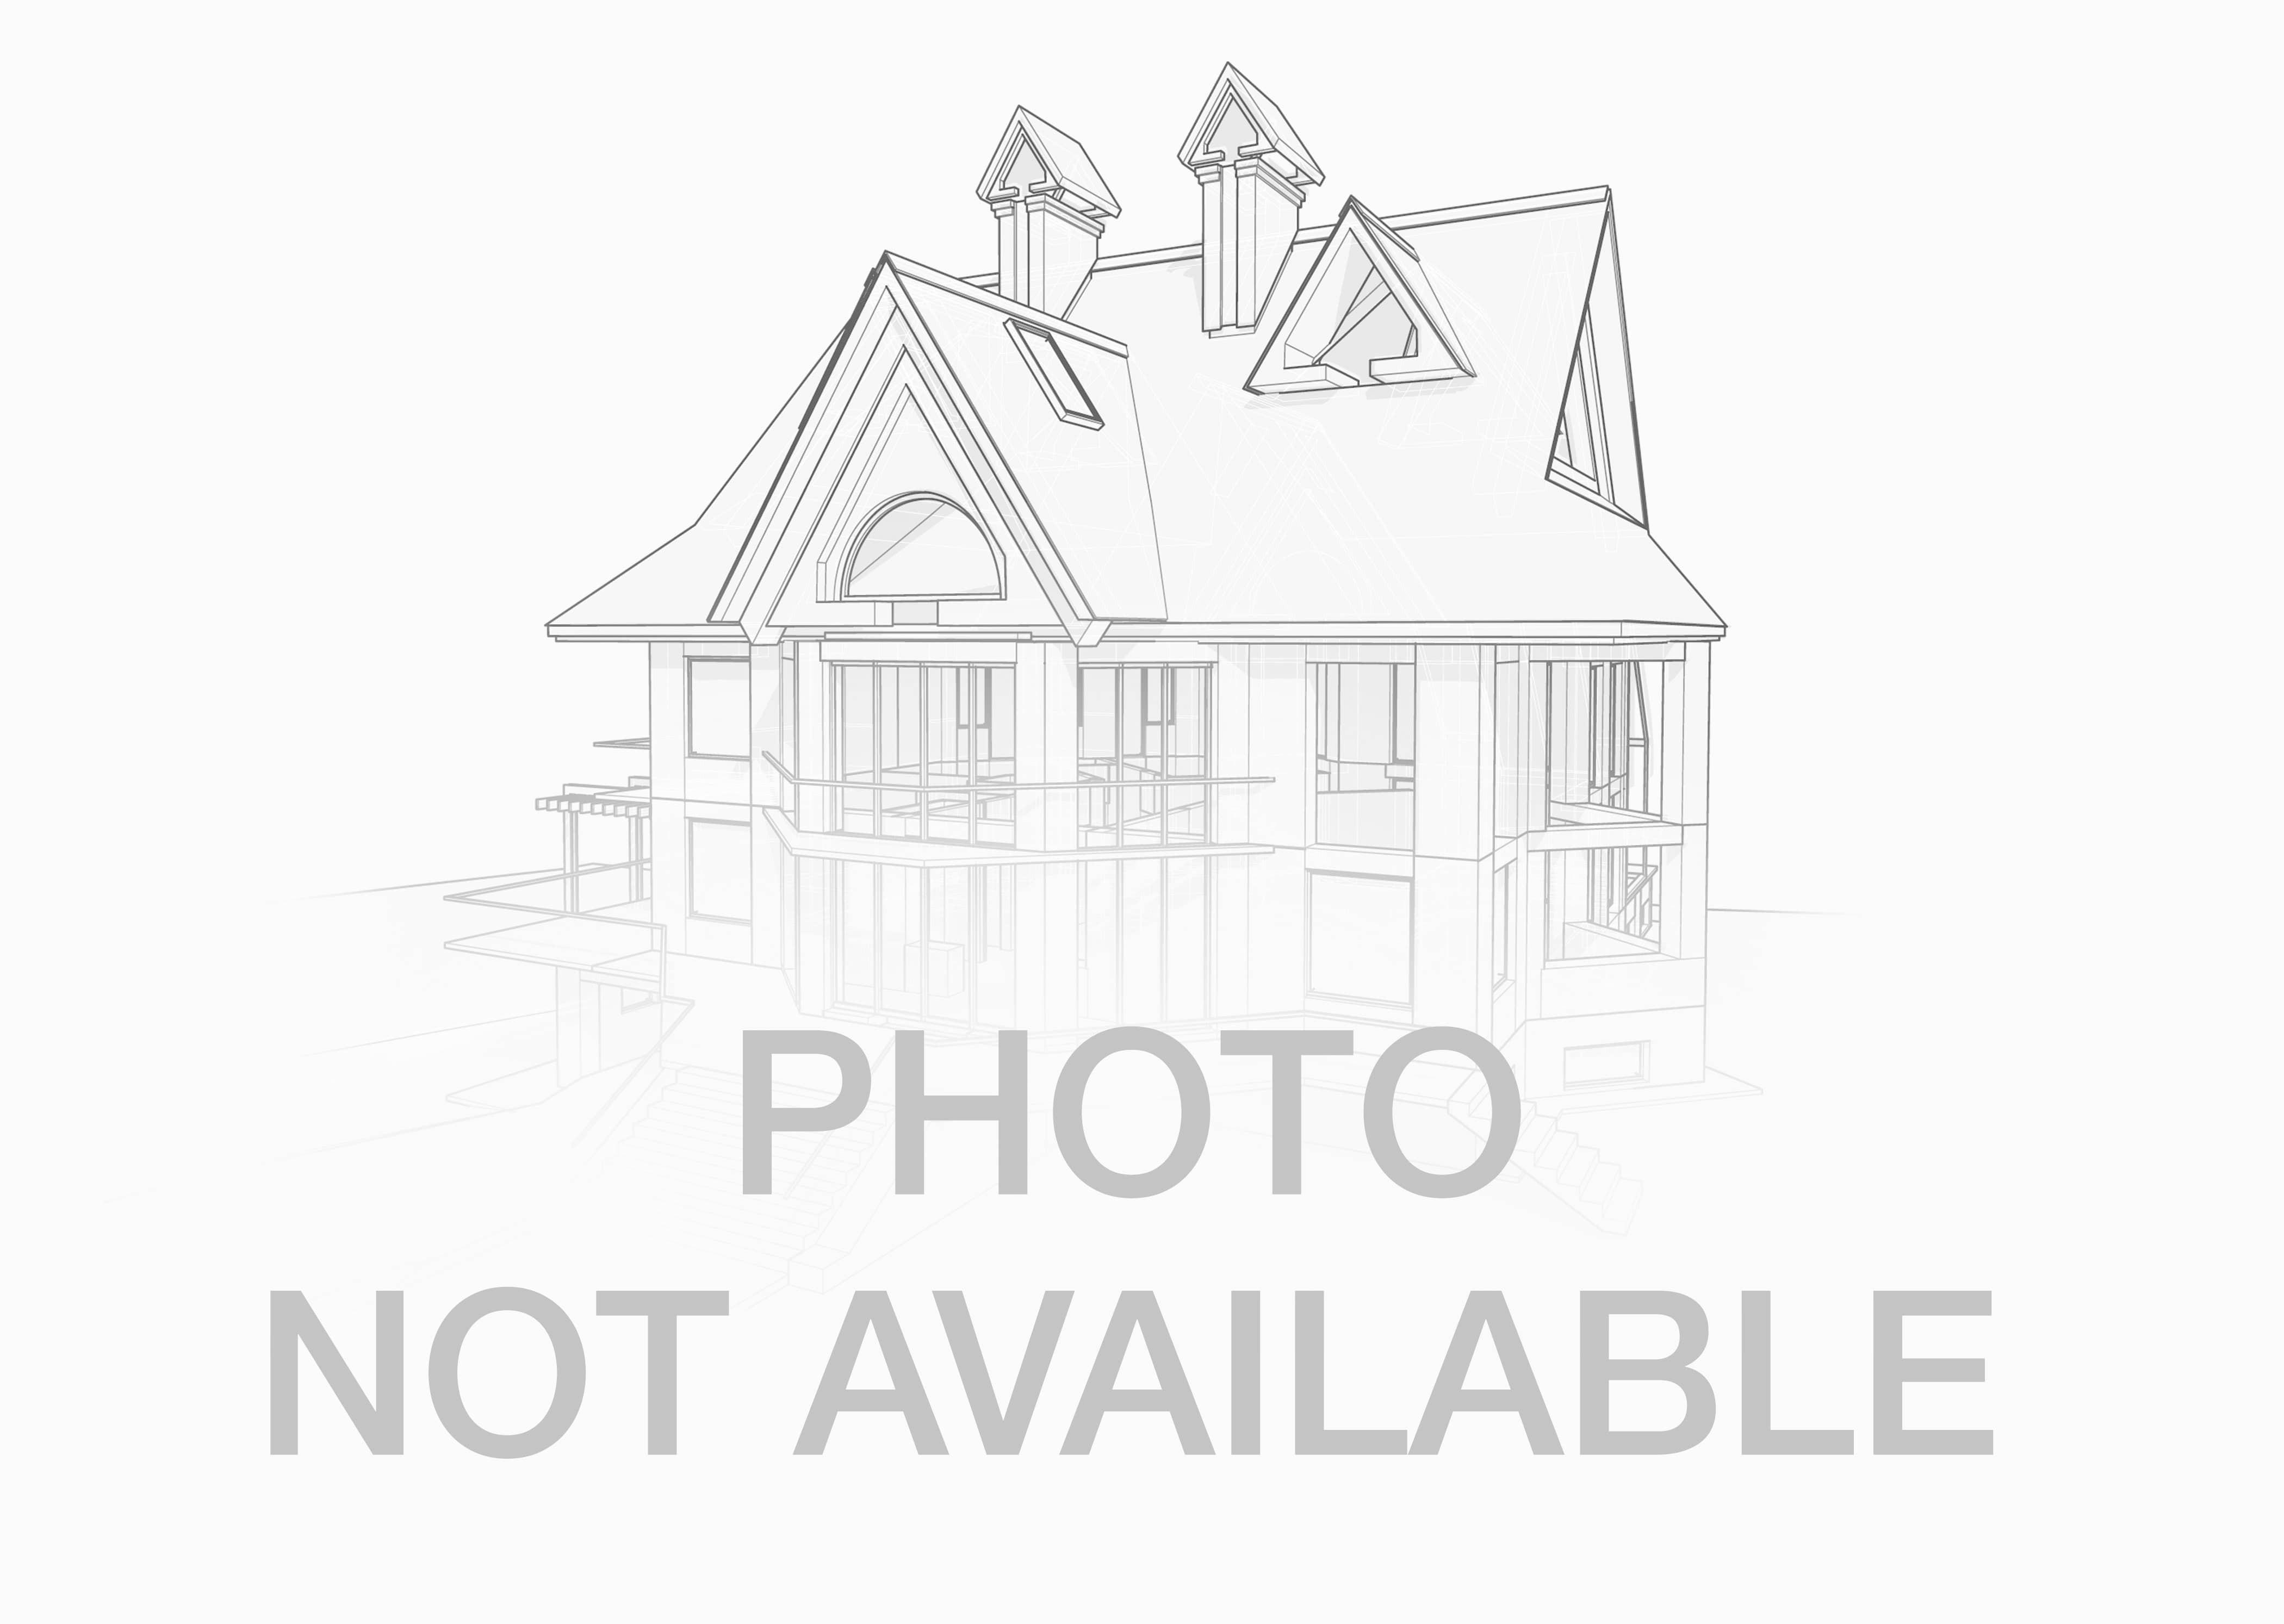 Houses for rent beckley wv house plan 2017 for Home builders beckley wv